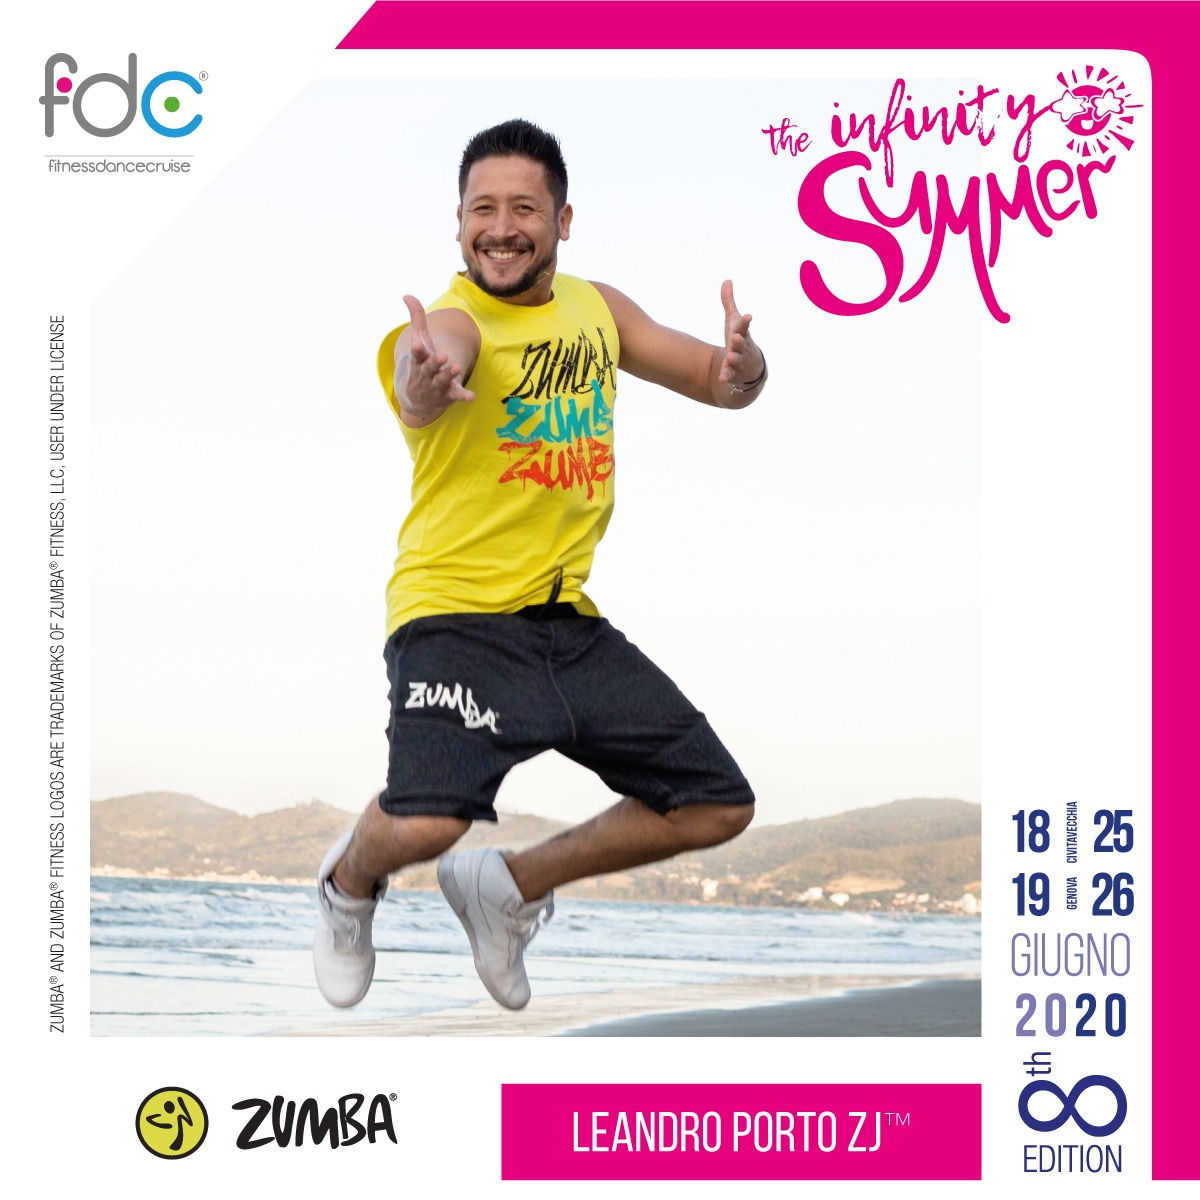 Zumba FDC Presenter Leandro Porto